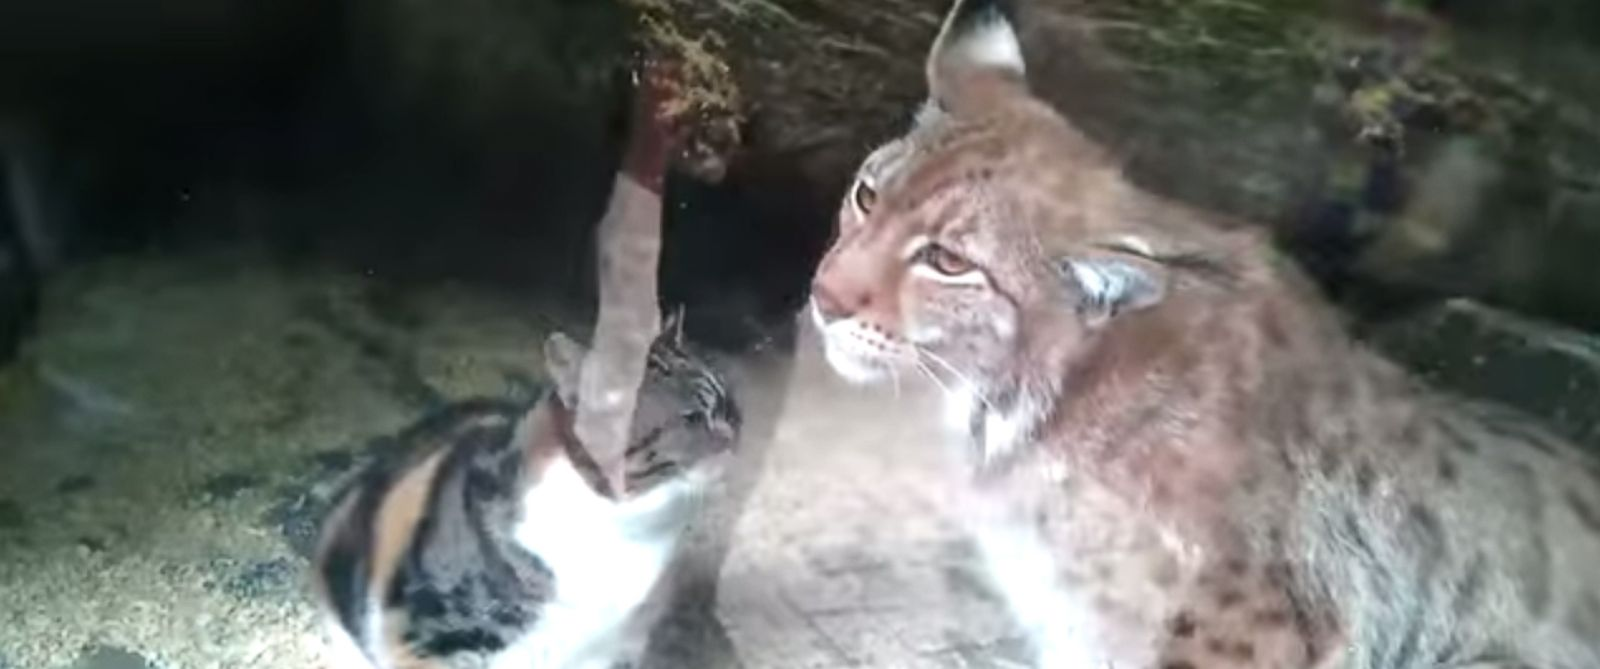 PHOTO: Dusya, the stray cat, and Linda, the European lynx are seen together.